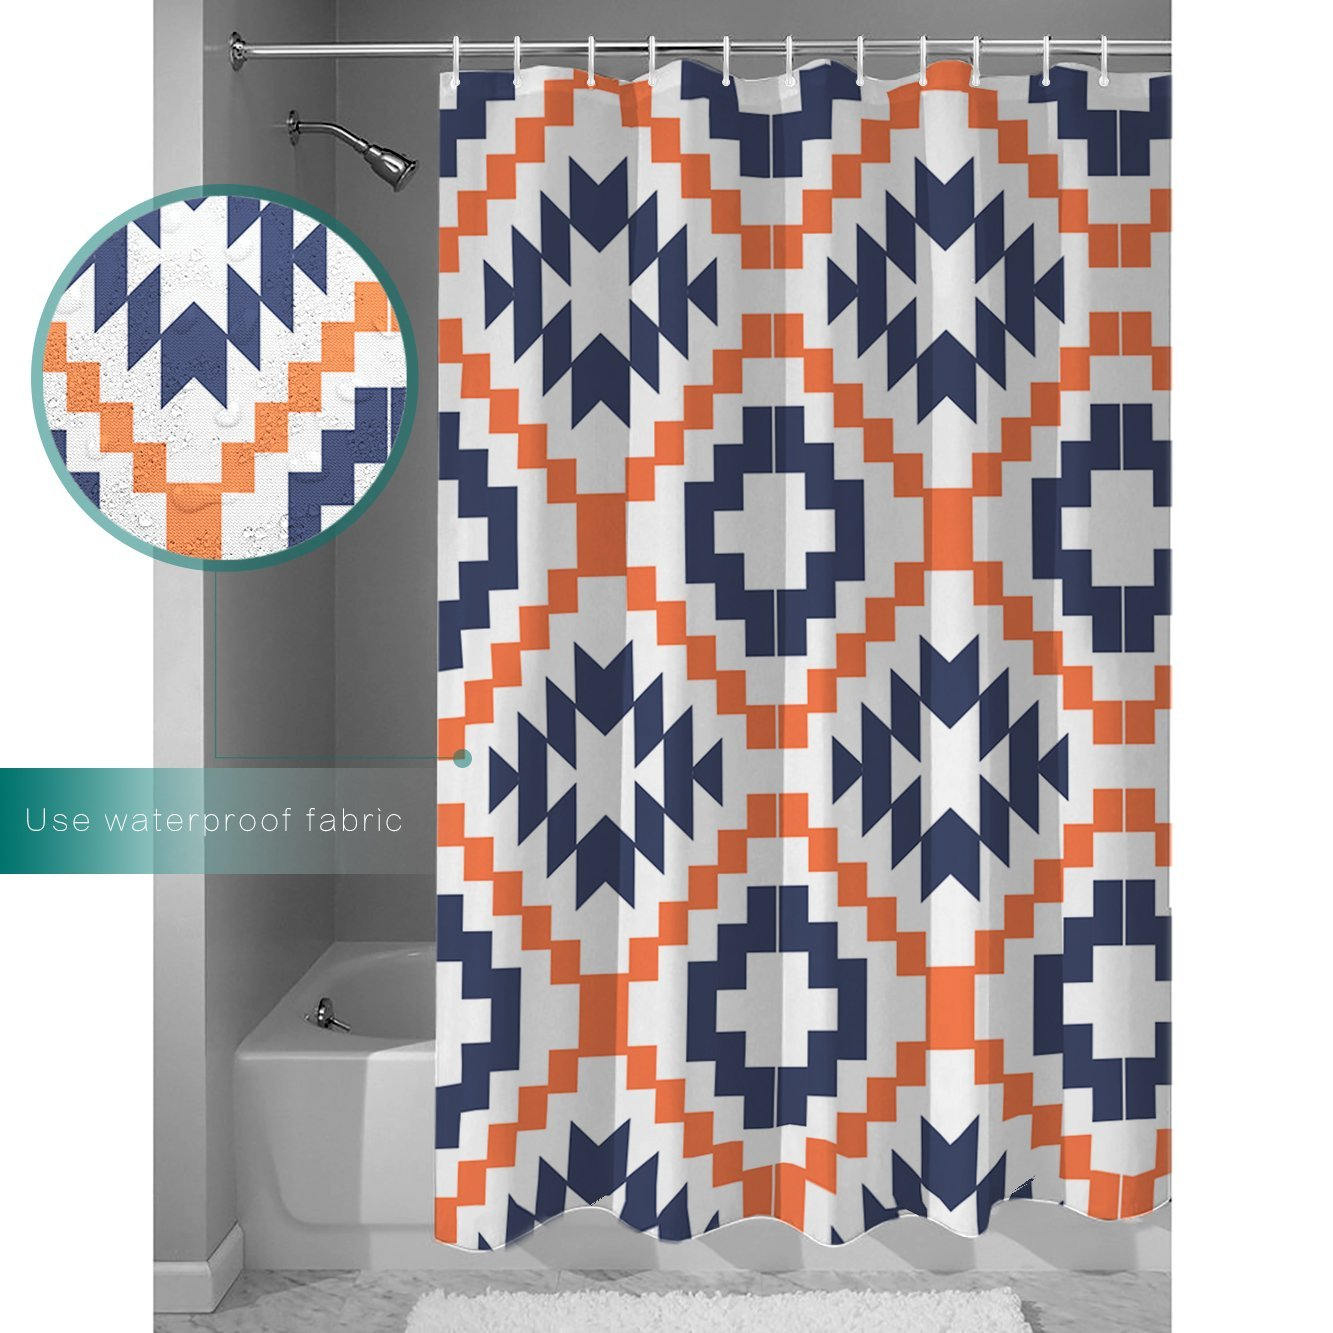 Shower Curtain Square Pixel Mosaic Geometric Pattern Blue And Orange Funny Soft Comfort With Hooks 72x96 Inches In Curtains From Home